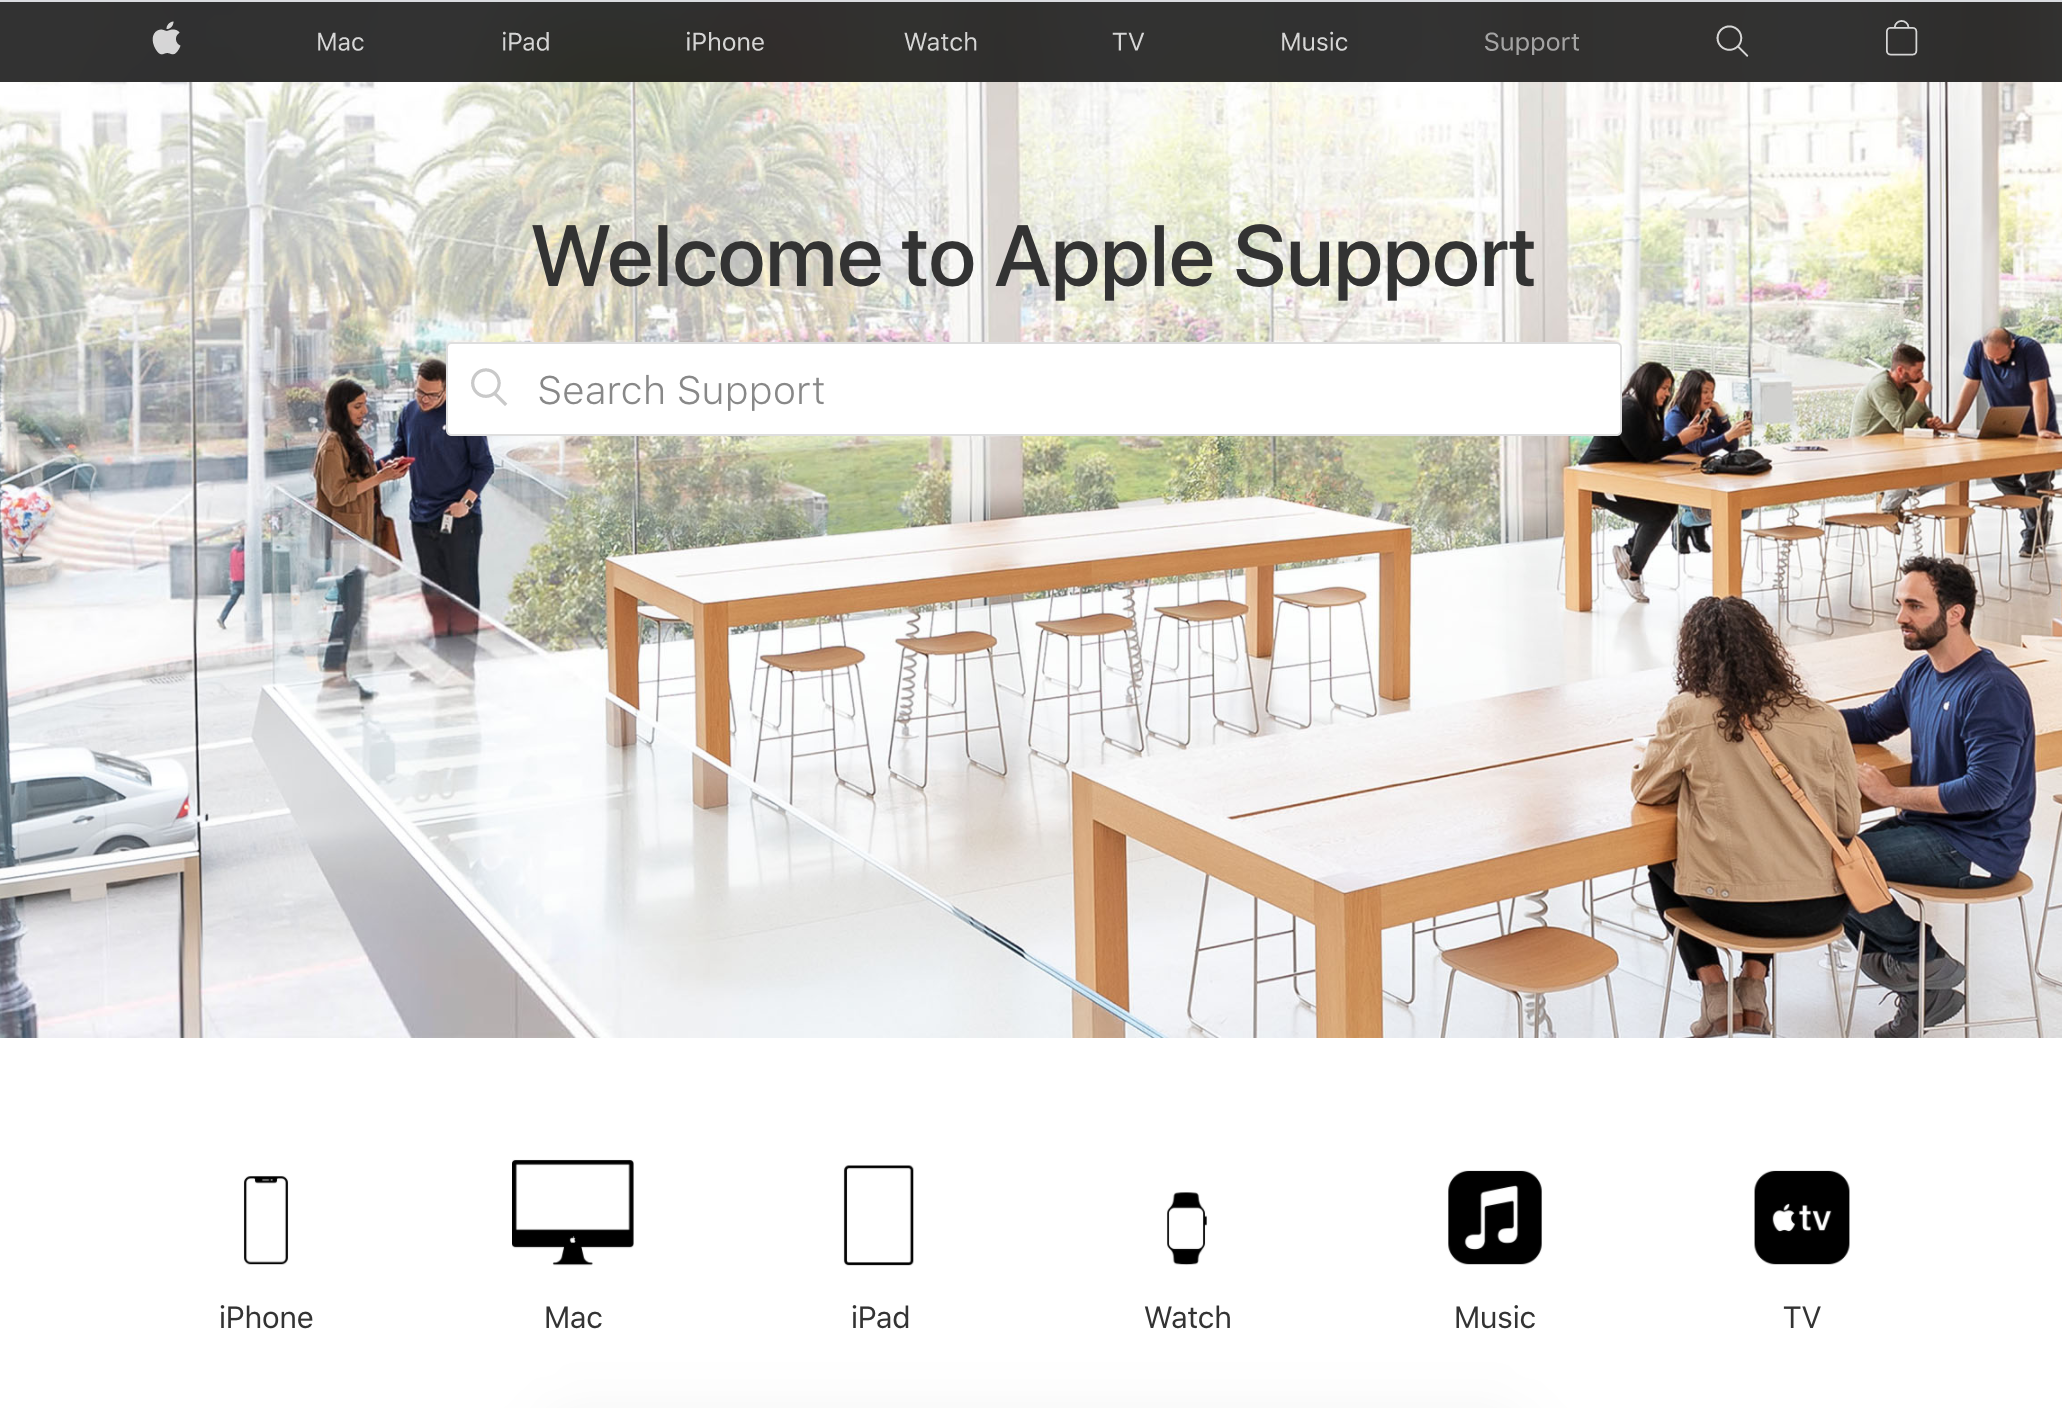 A screenshot of the Apple support website showing the search bar and icons for their different products.